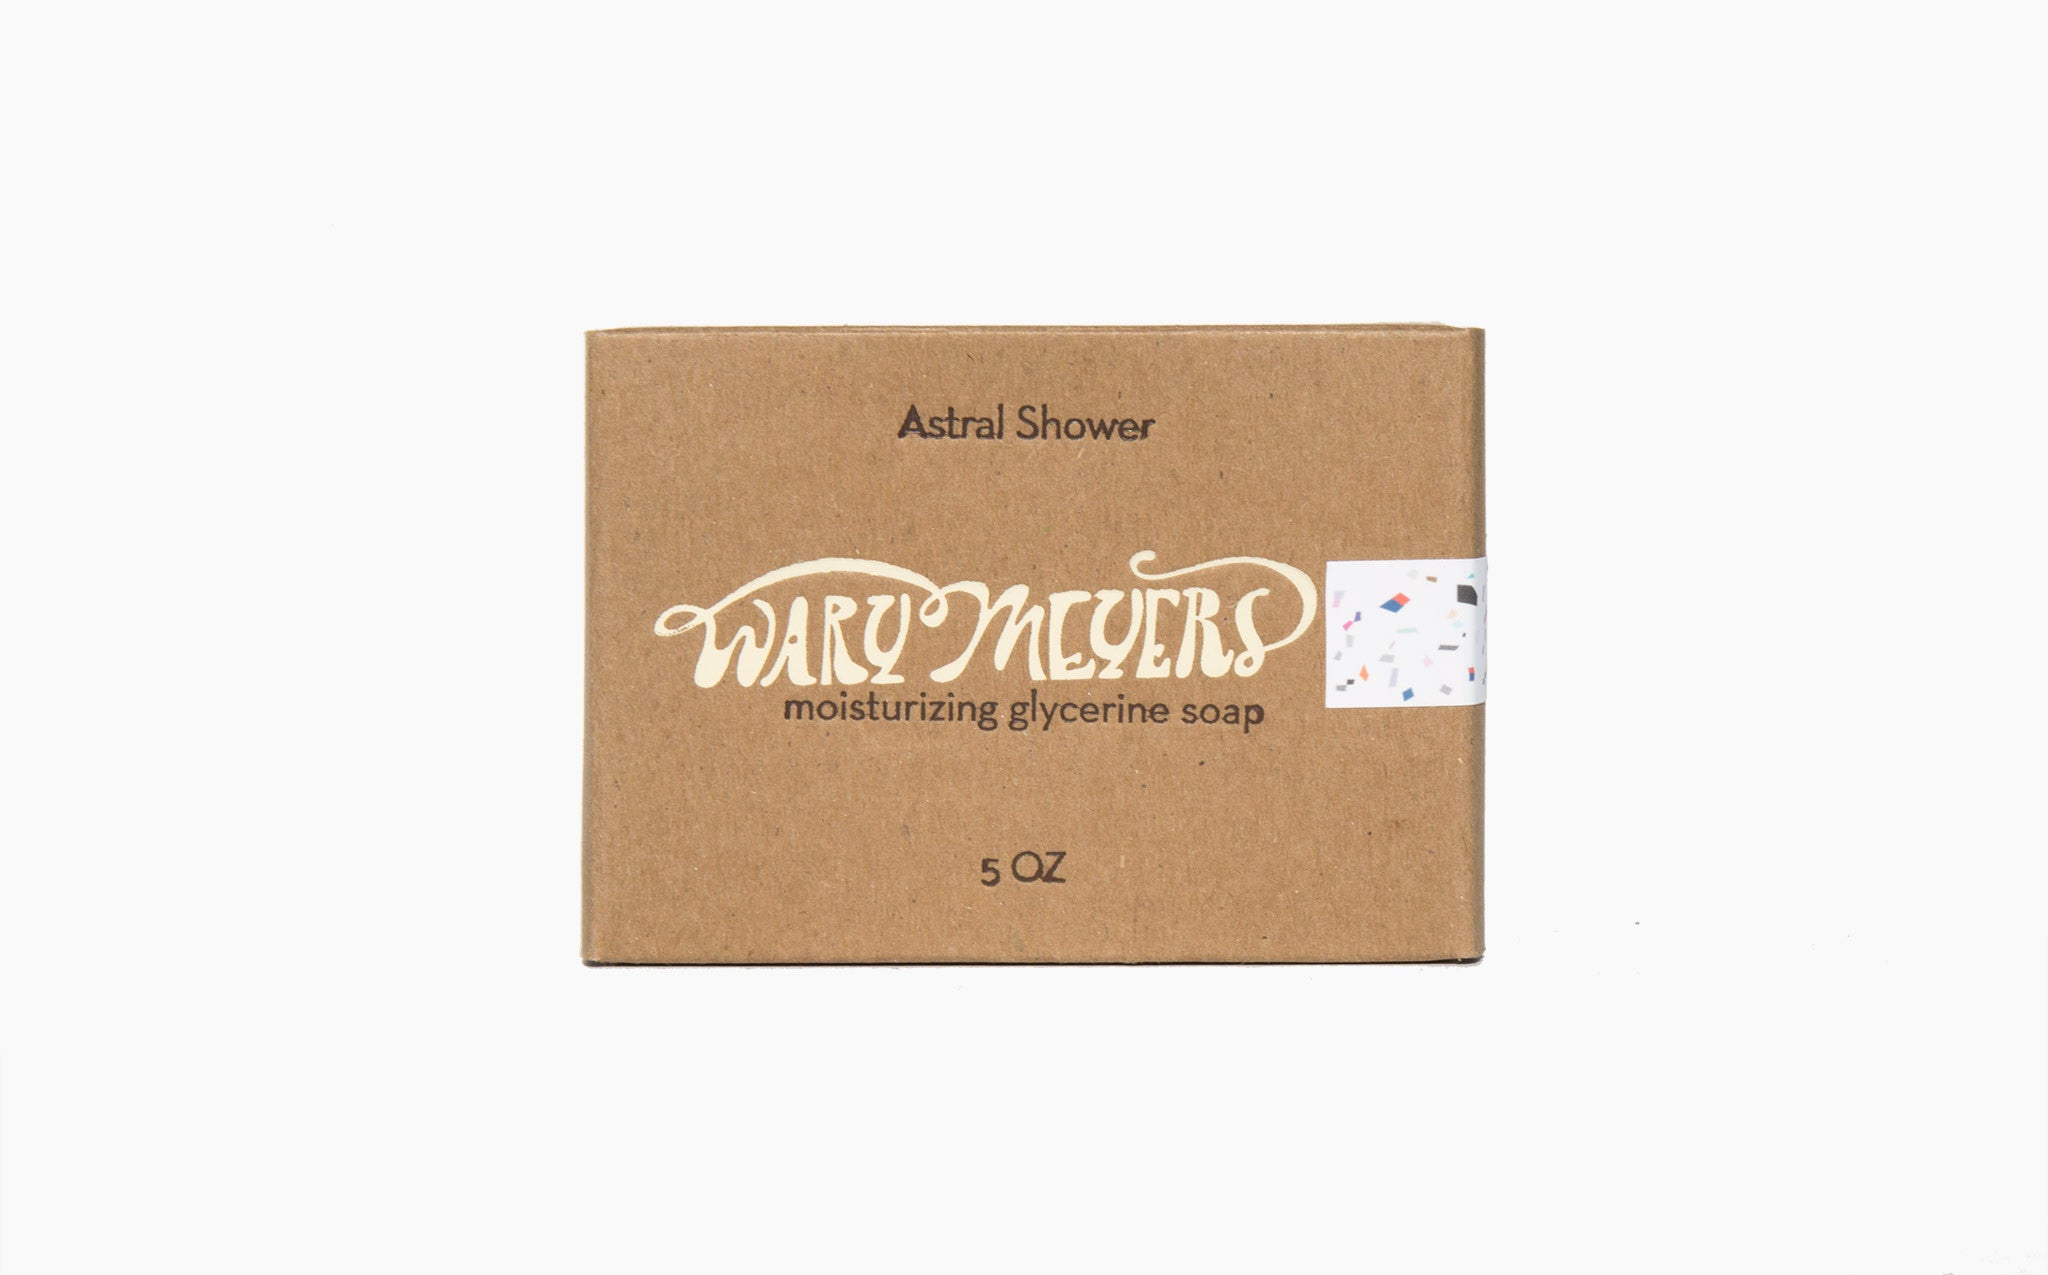 Wary Meyers Astral Shower Soap